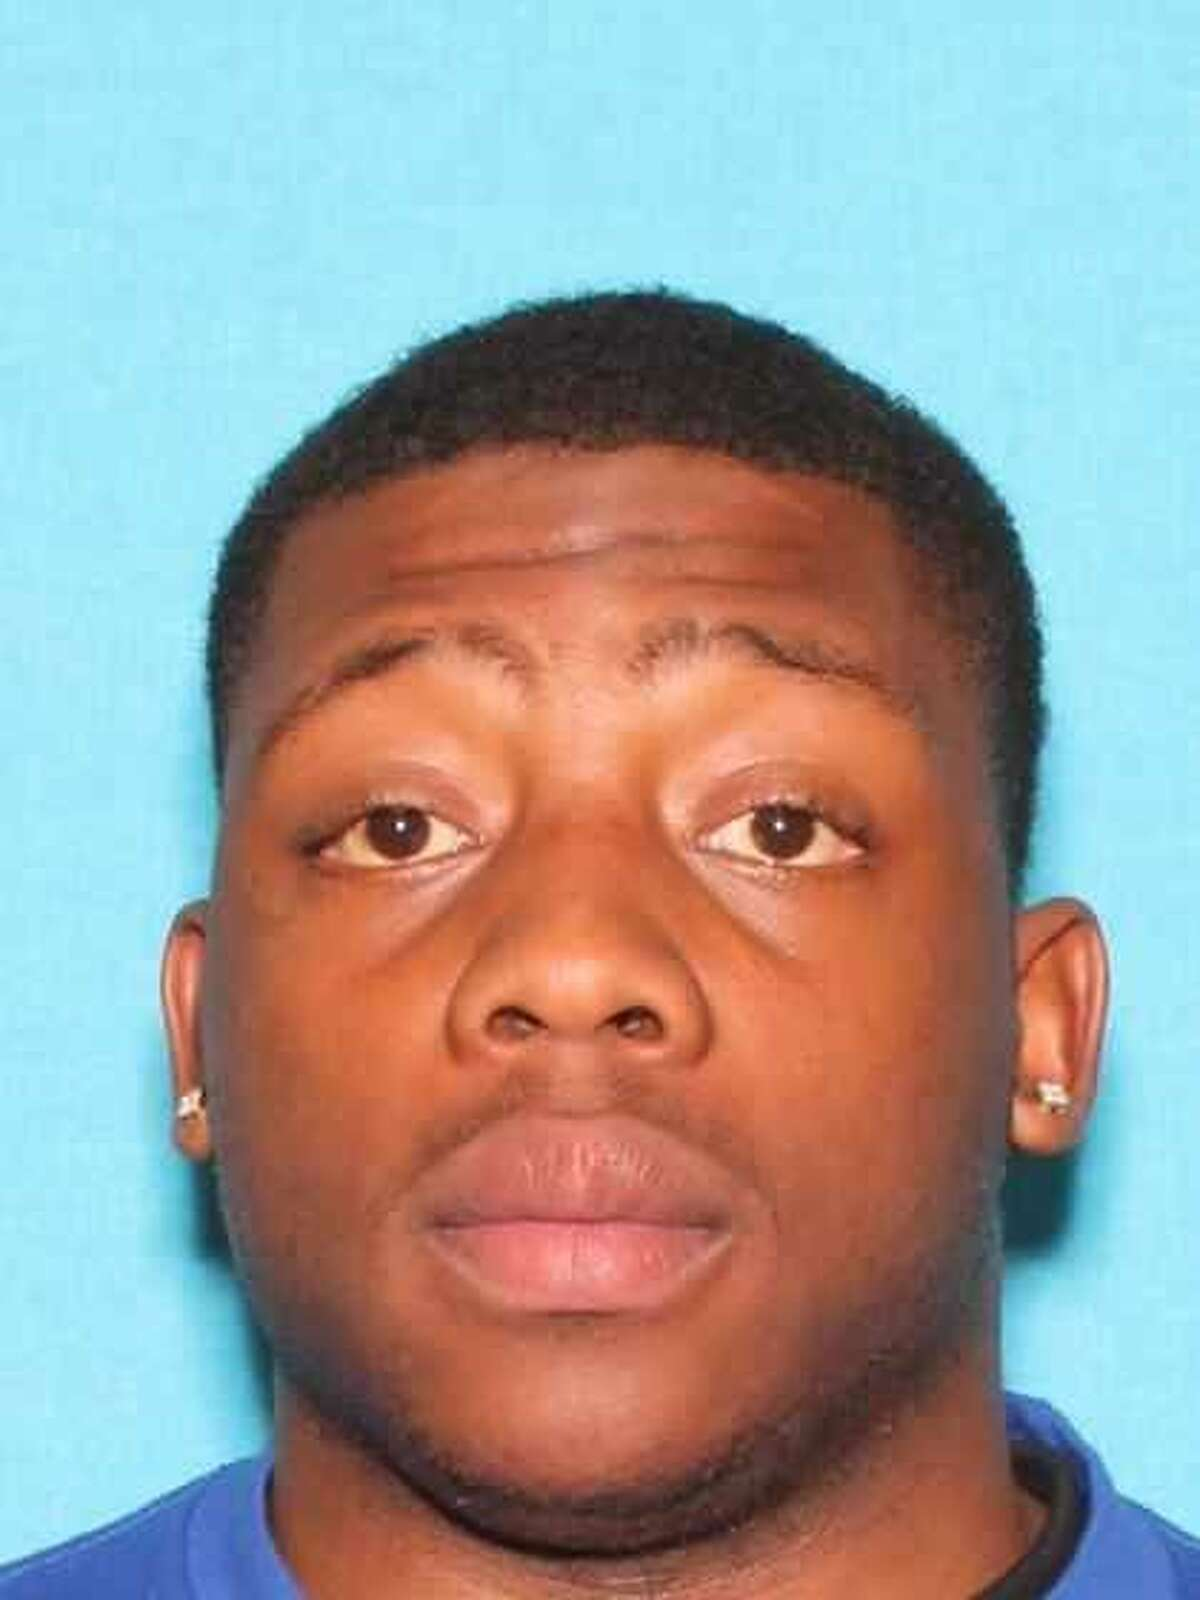 FUGITIVE OF THE WEEK: Lebaron Mitchell, is wanted by theU.S. Marshals Service on a warrant for felon in possession of a firearm